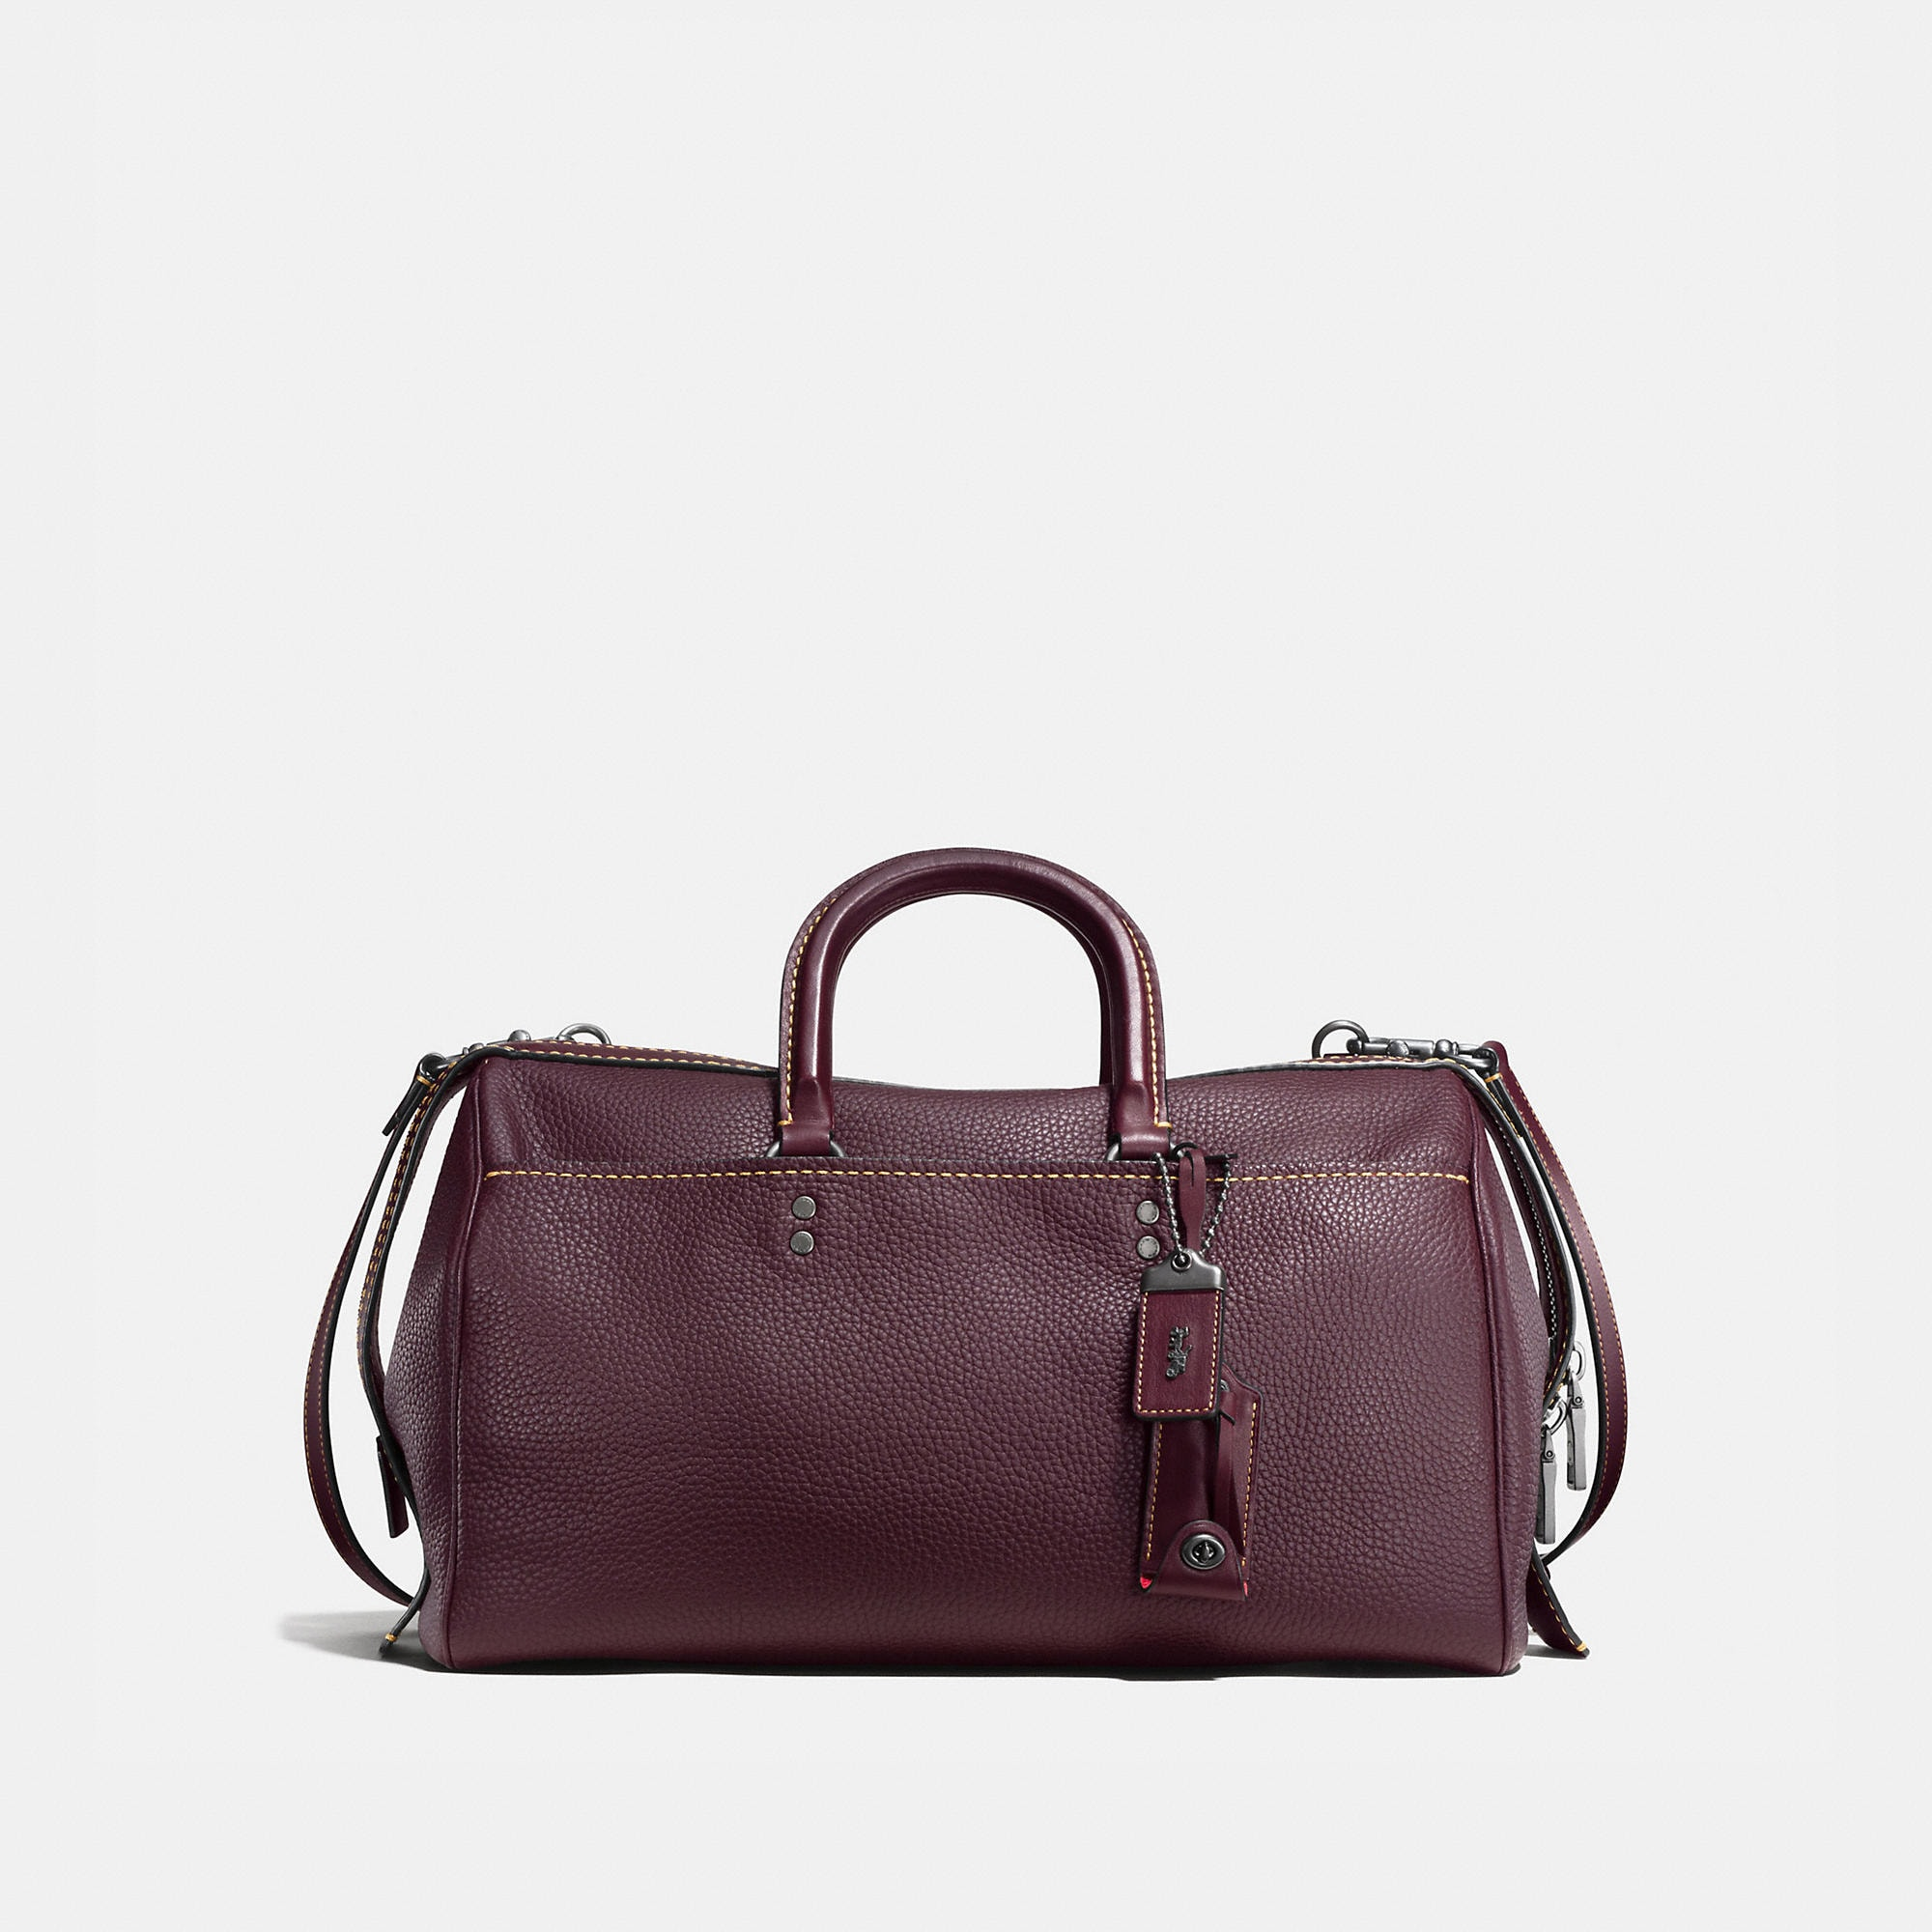 Coach Rogue Satchel 36 In Glovetanned Pebble Leather